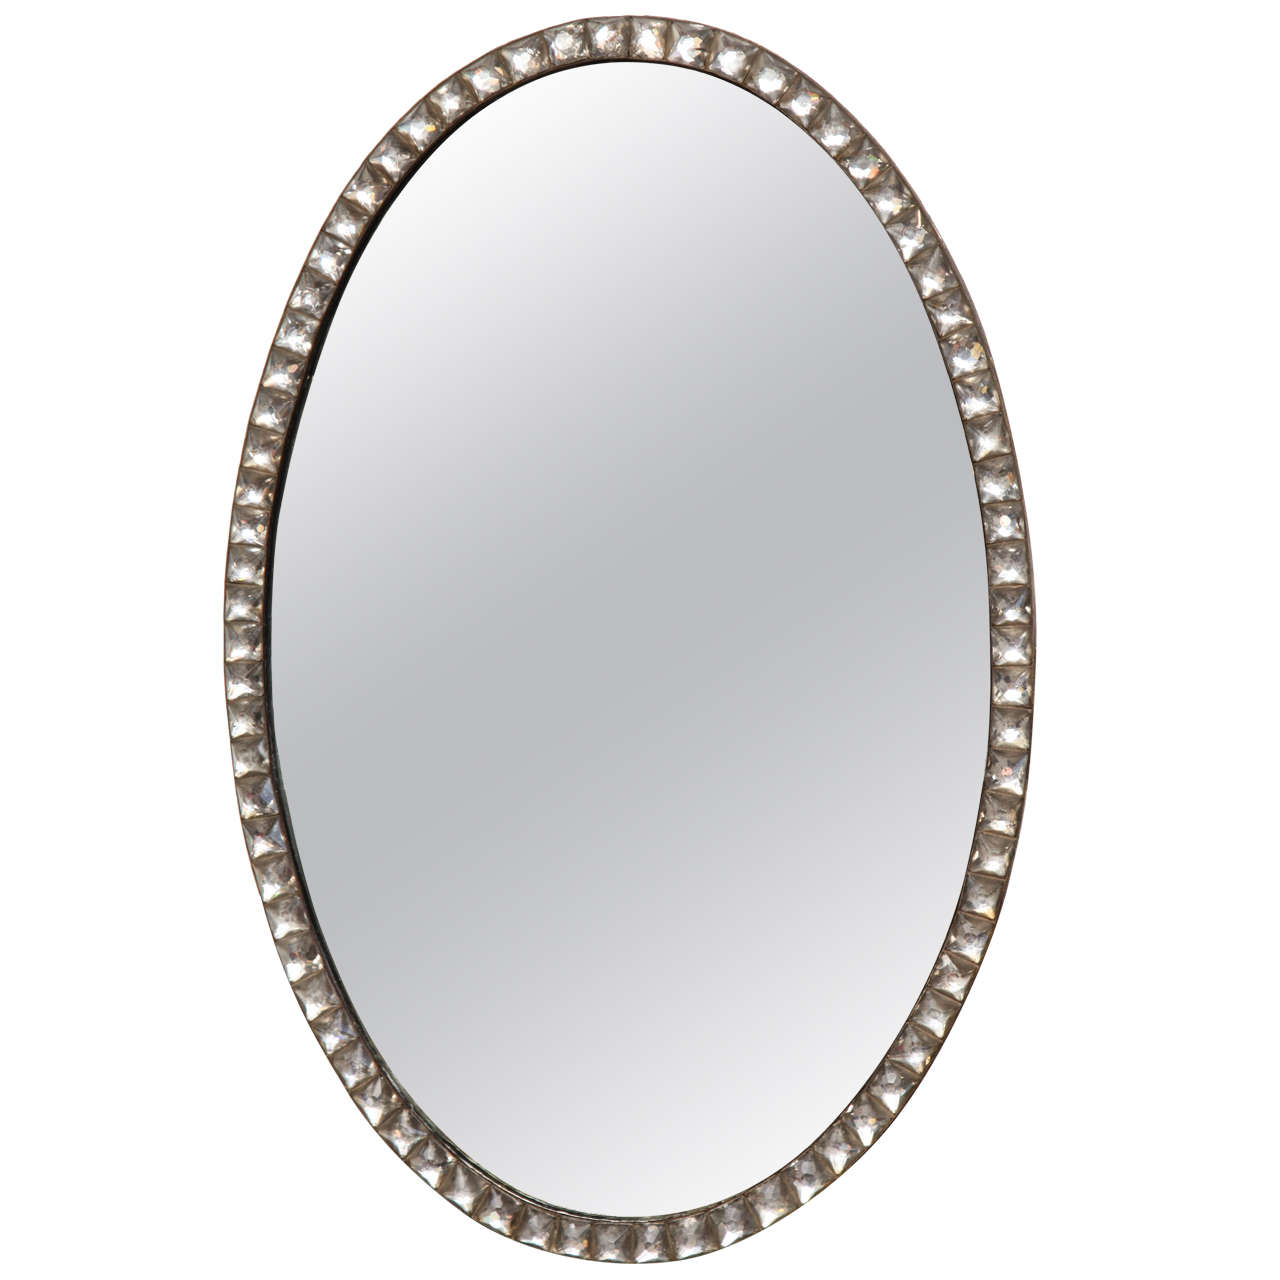 Unusual 19th Century Irish Regency, Clear Lozenge, Oval Mirror